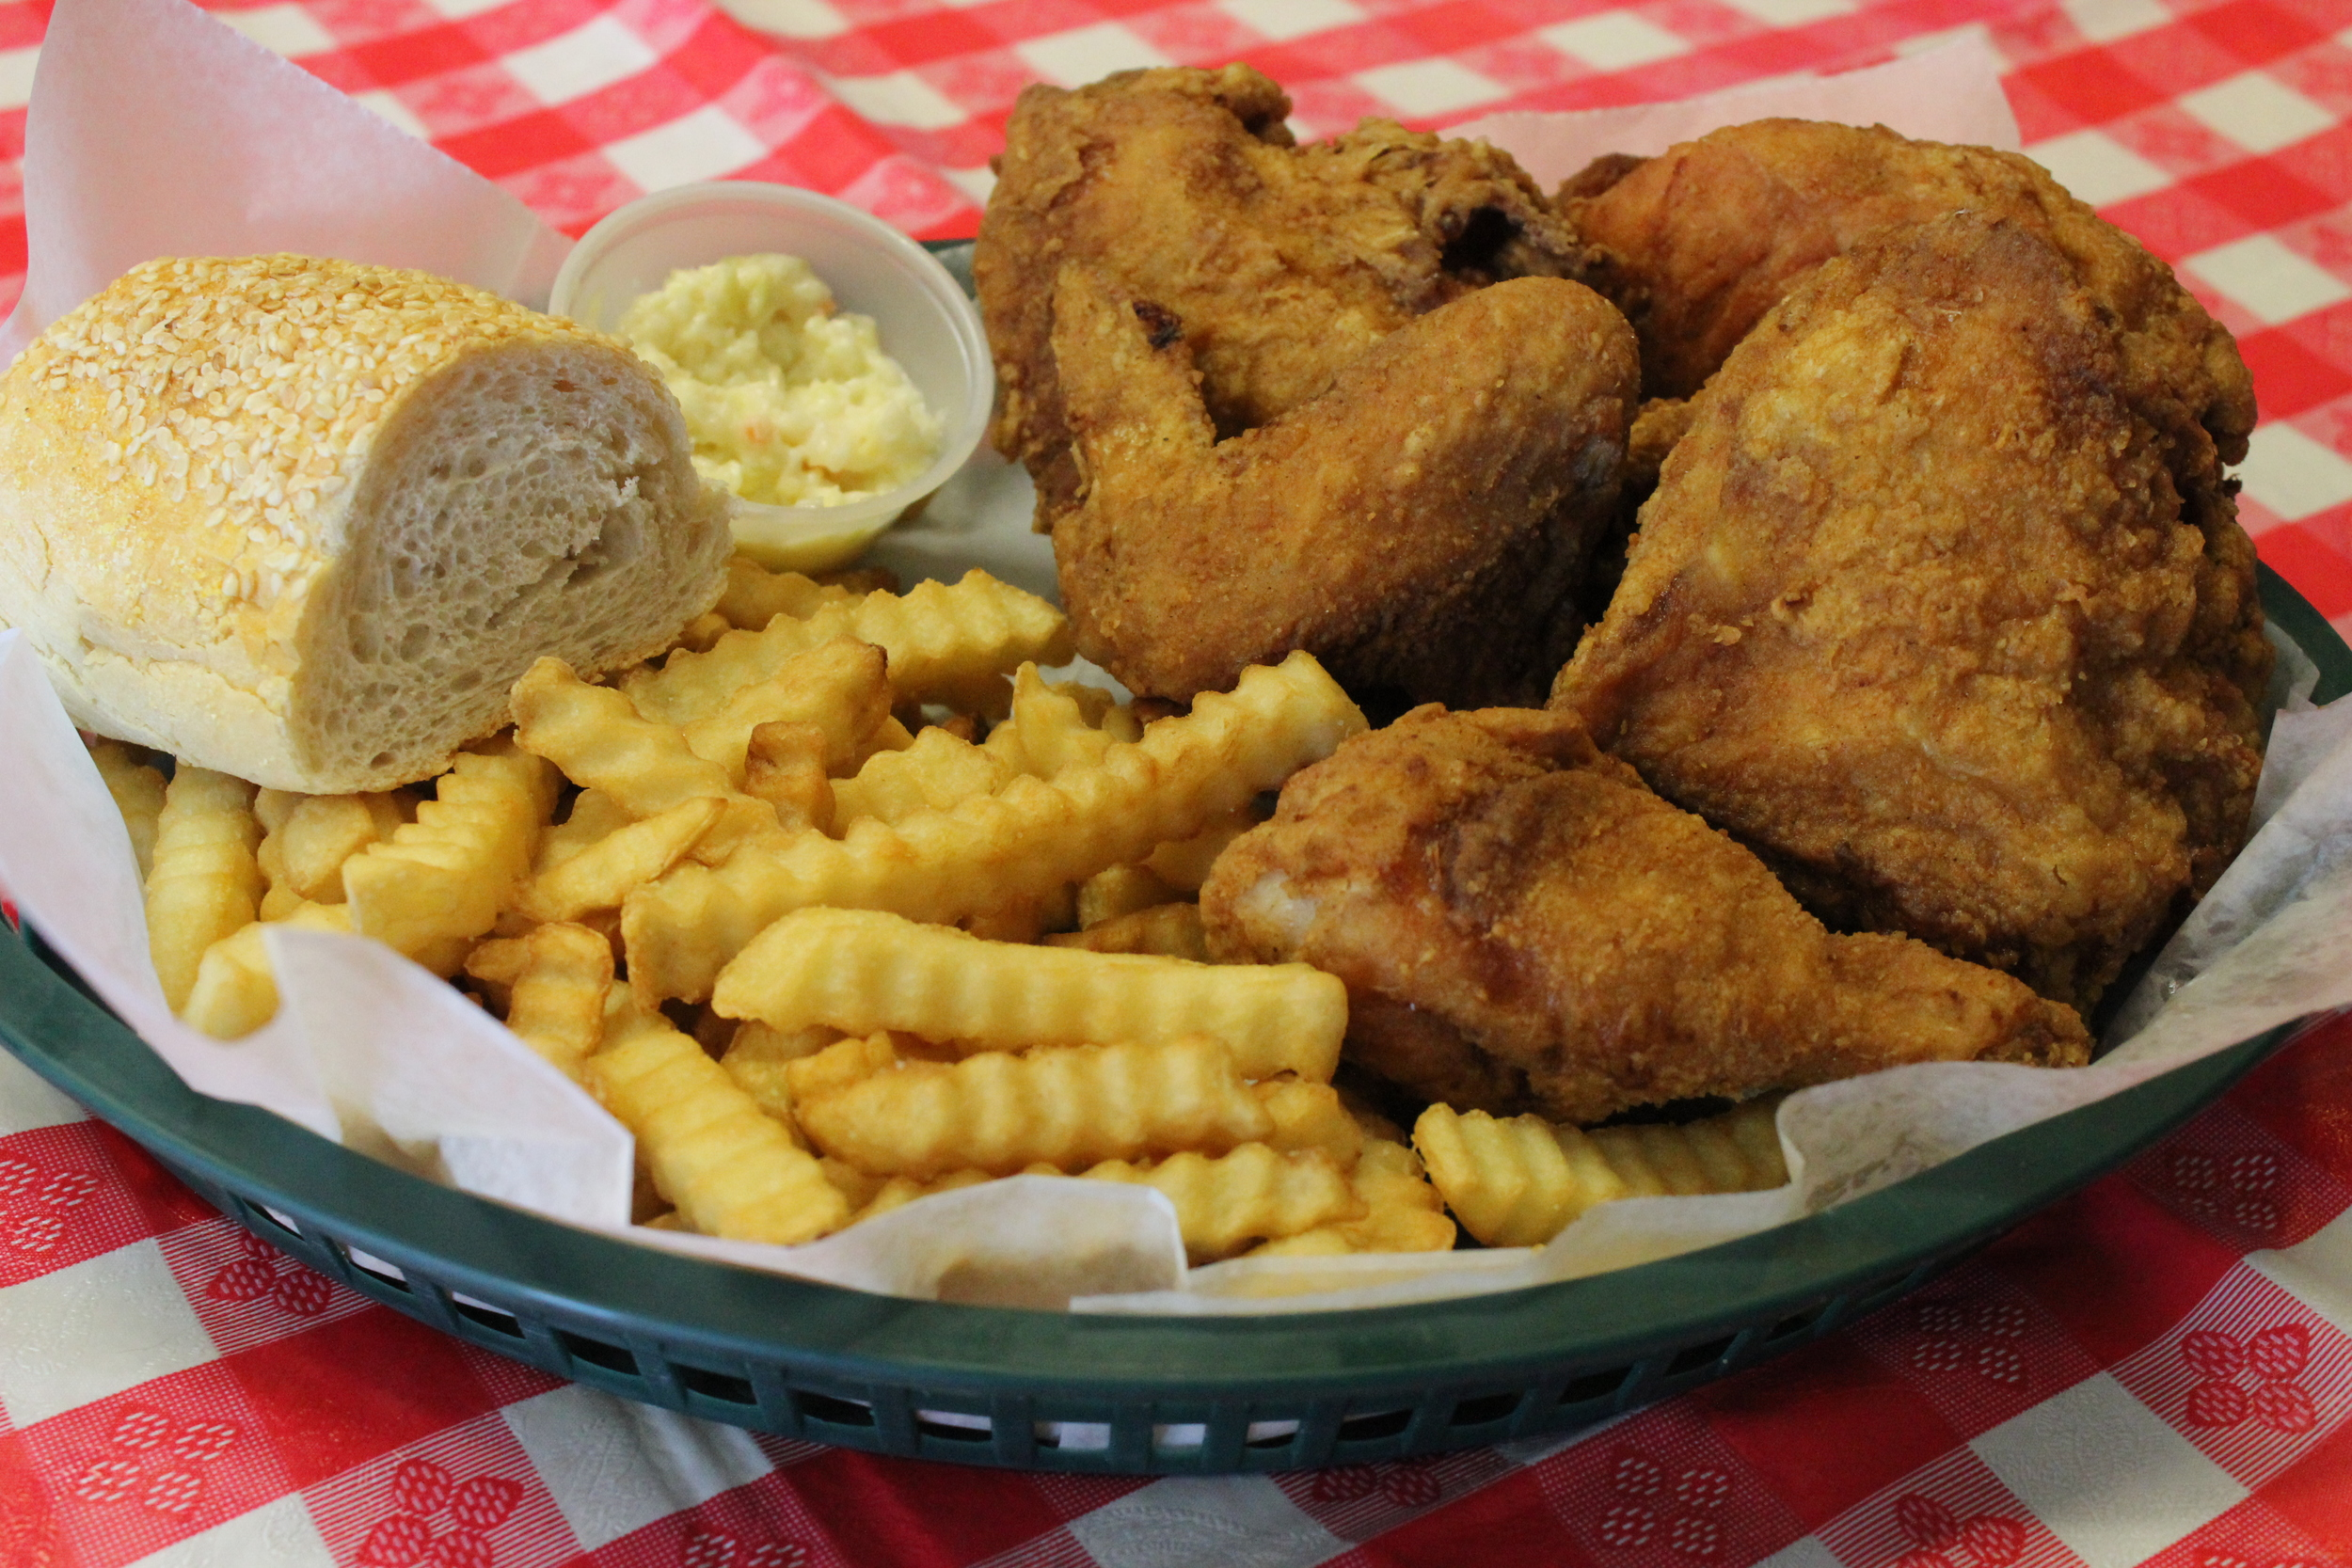 Our 4-piece broasted chicken dinner $7.95